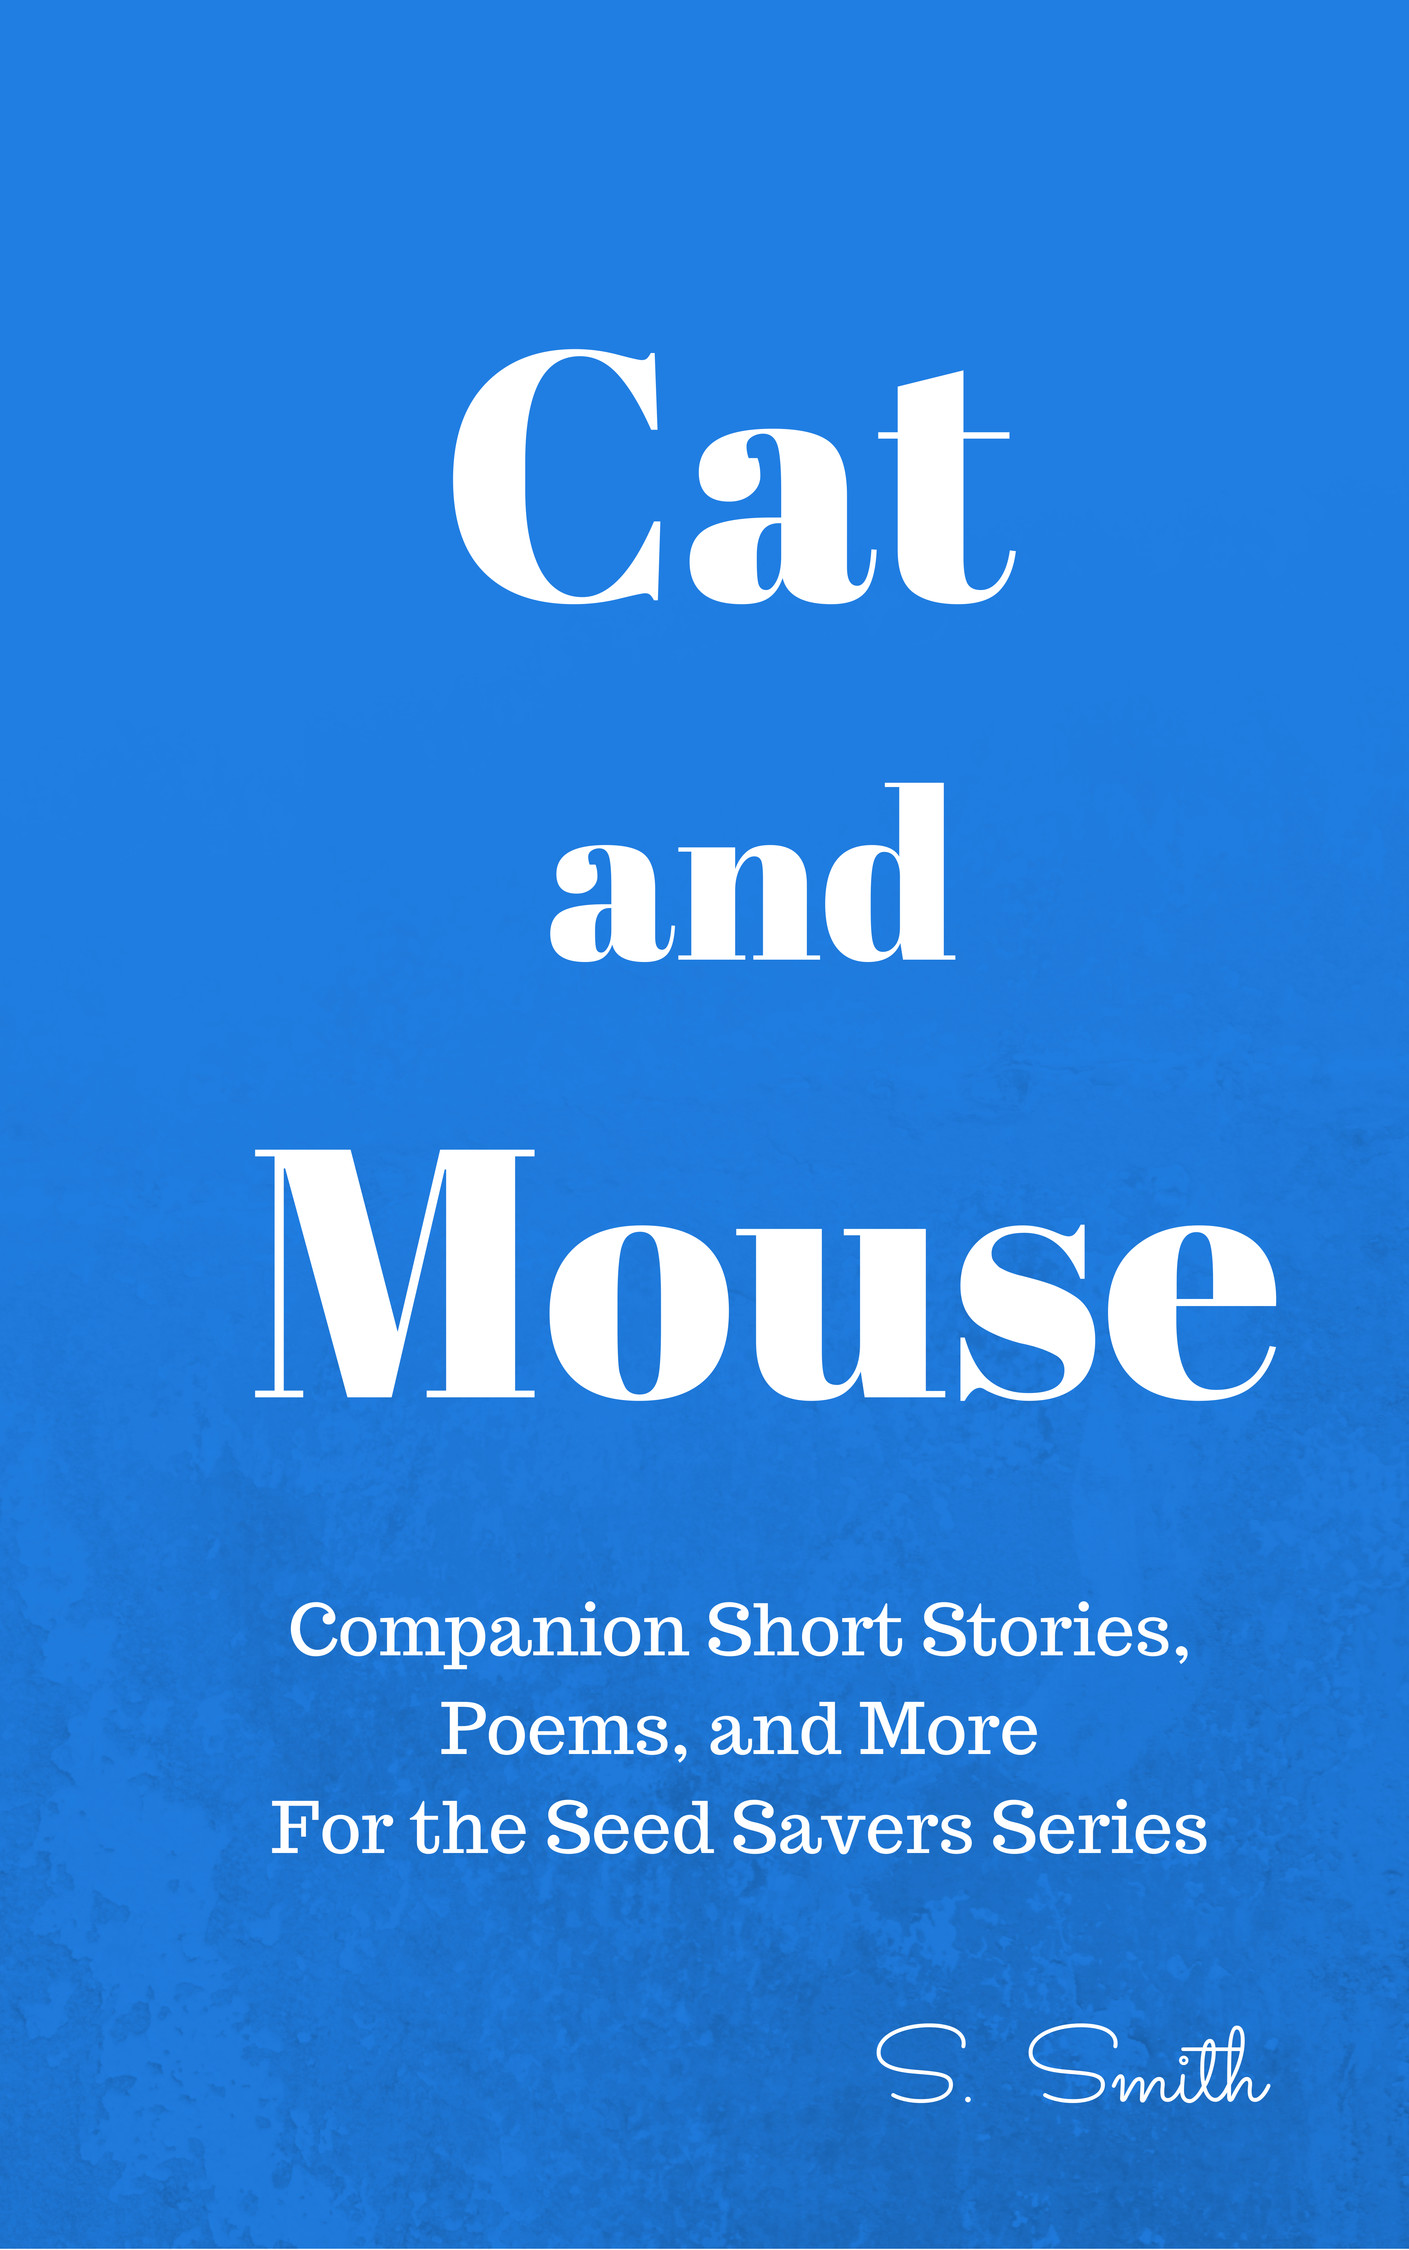 S. Smith - Cat and Mouse